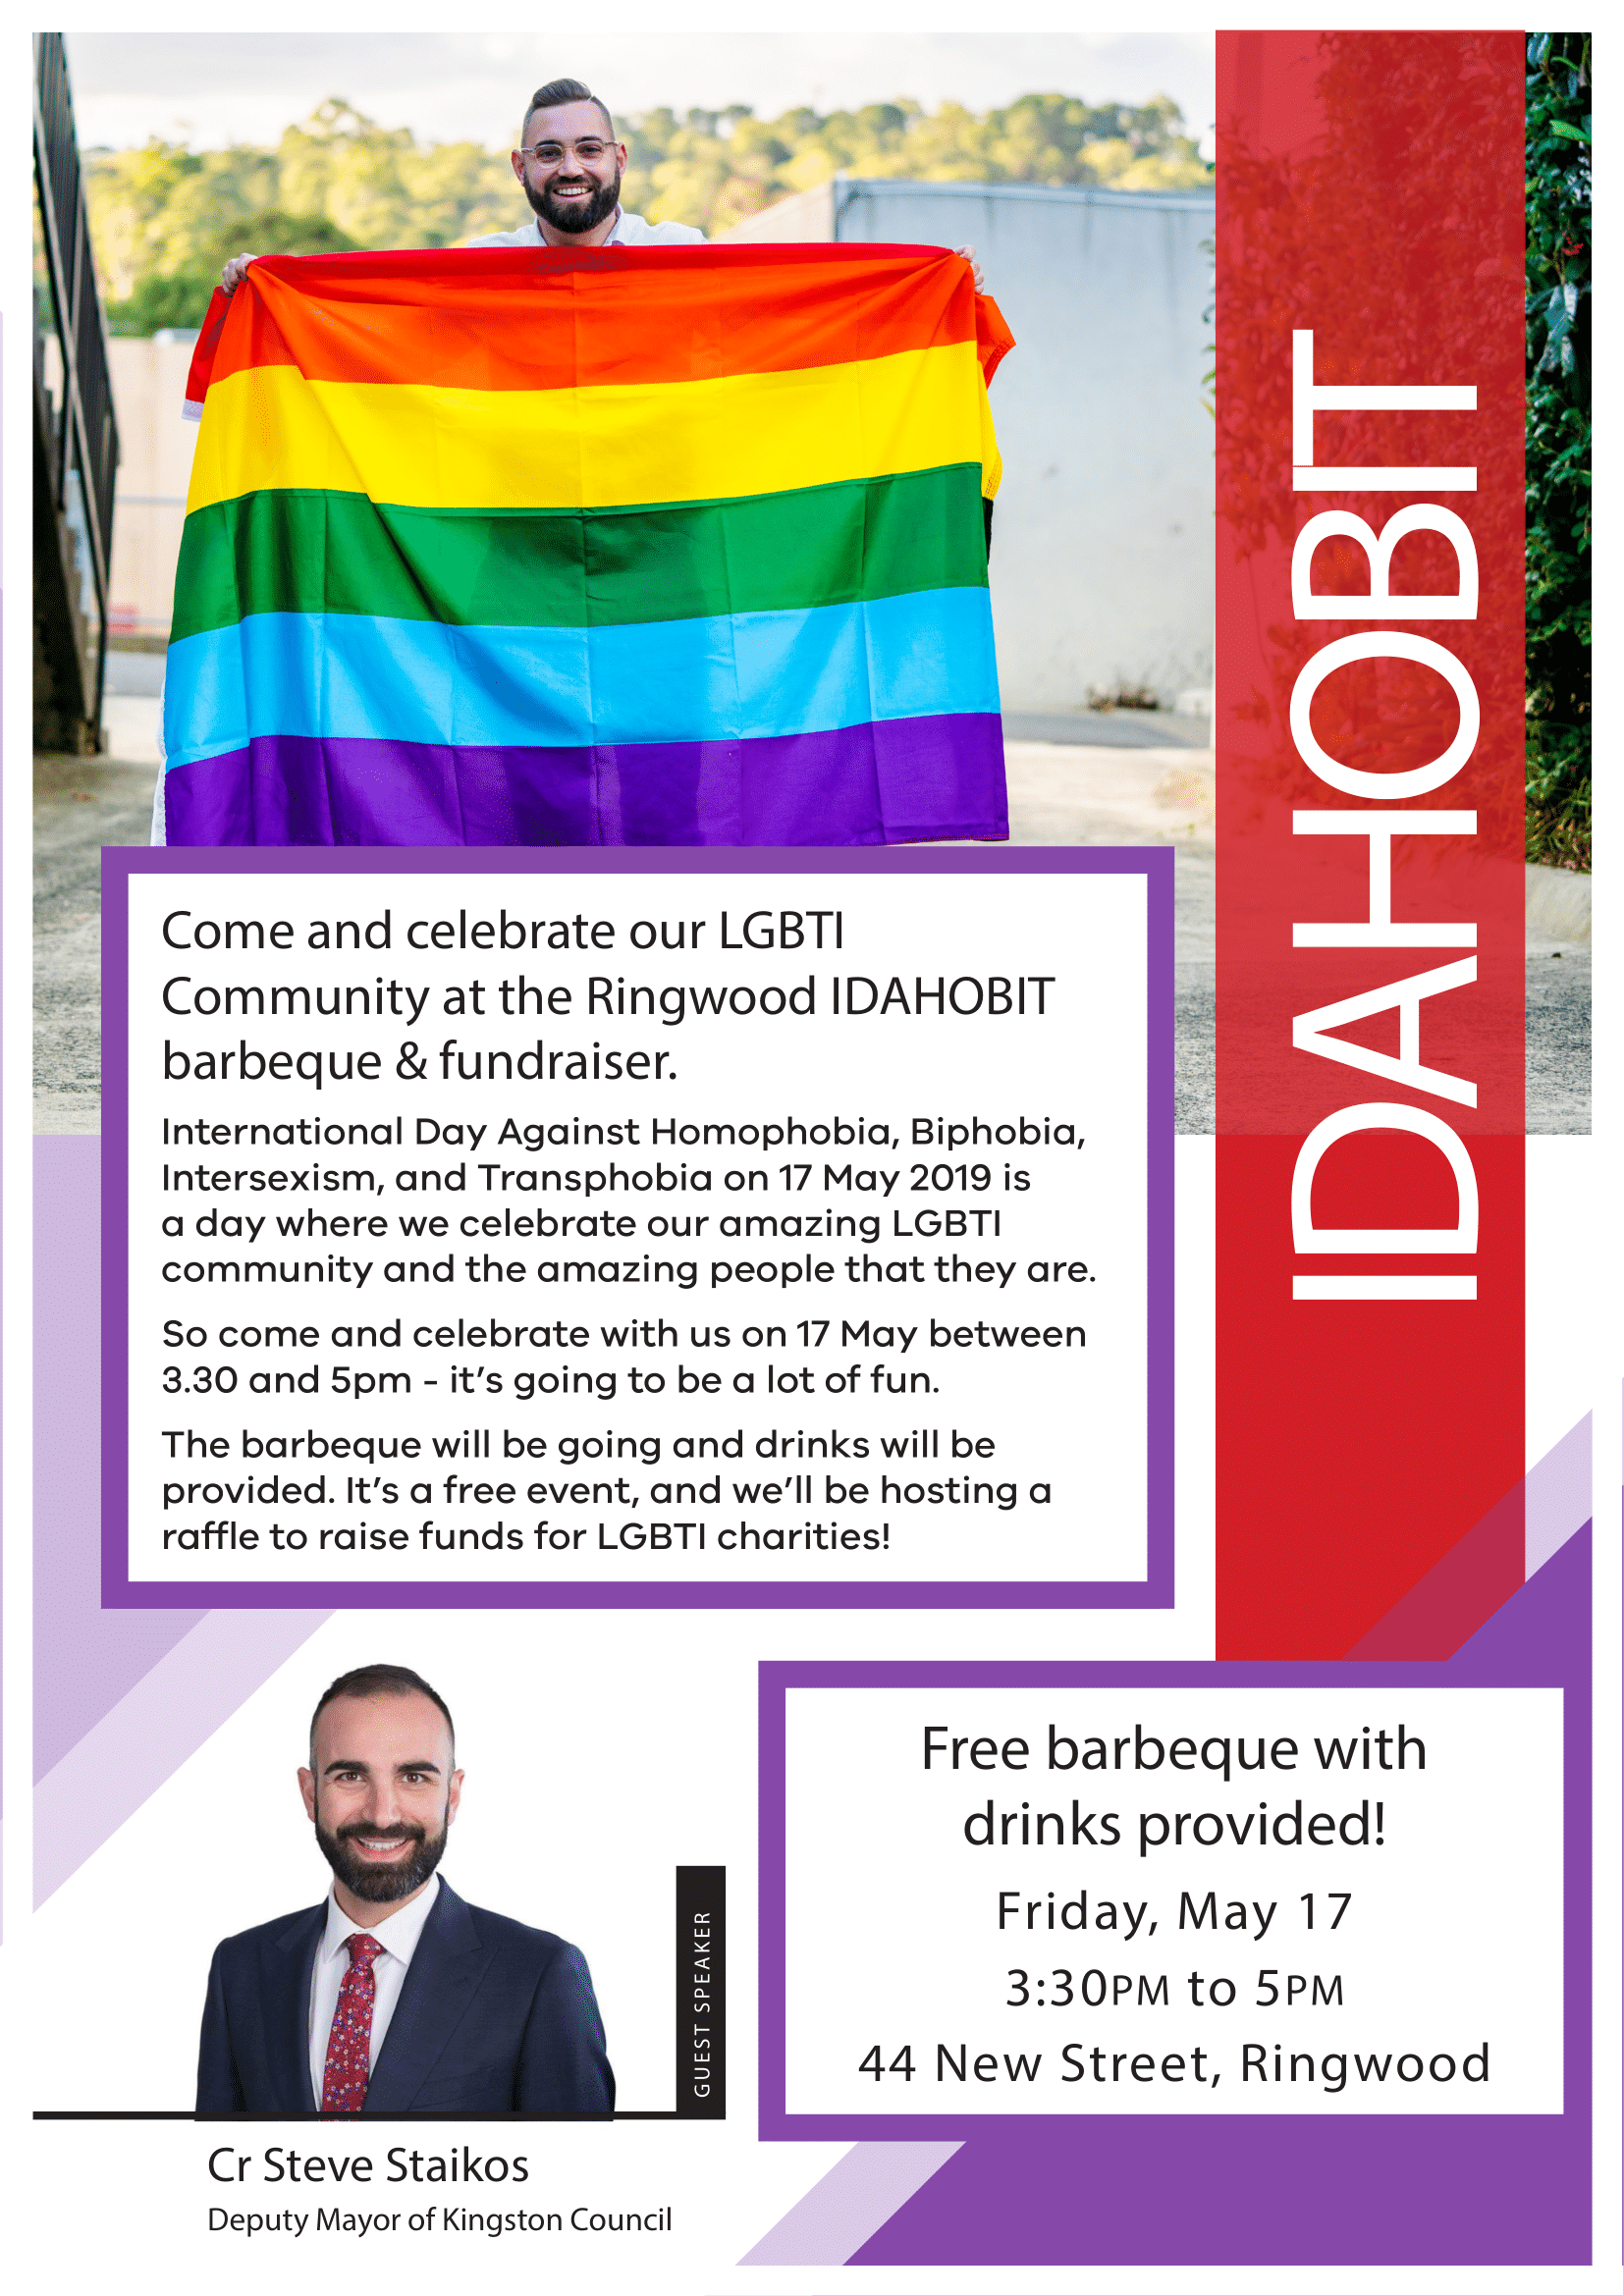 Free barbeque with drinks provided! Friday, May 17 3:30PM to 5PM 44 New Street, Ringwood. Guest Speaker Cr Steve Staikos. Come and celebrate our LGBTI Community at the Ringwood IDAHOBIT barbeque & fundraiser. International Day Against Homophobia, Biphobia, Intersexism, and Transphobia on 17 May 2019 is a day where we celebrate our amazing LGBTI community and the amazing people that they are. So come and celebrate with us on 17 May between 3.30 and 5pm - it's going to be a lot of fun. The barbeque will be going and drinks will be provided. It's a free event, and we'll be hosting a raffle to raise funds for LGBTI charities!